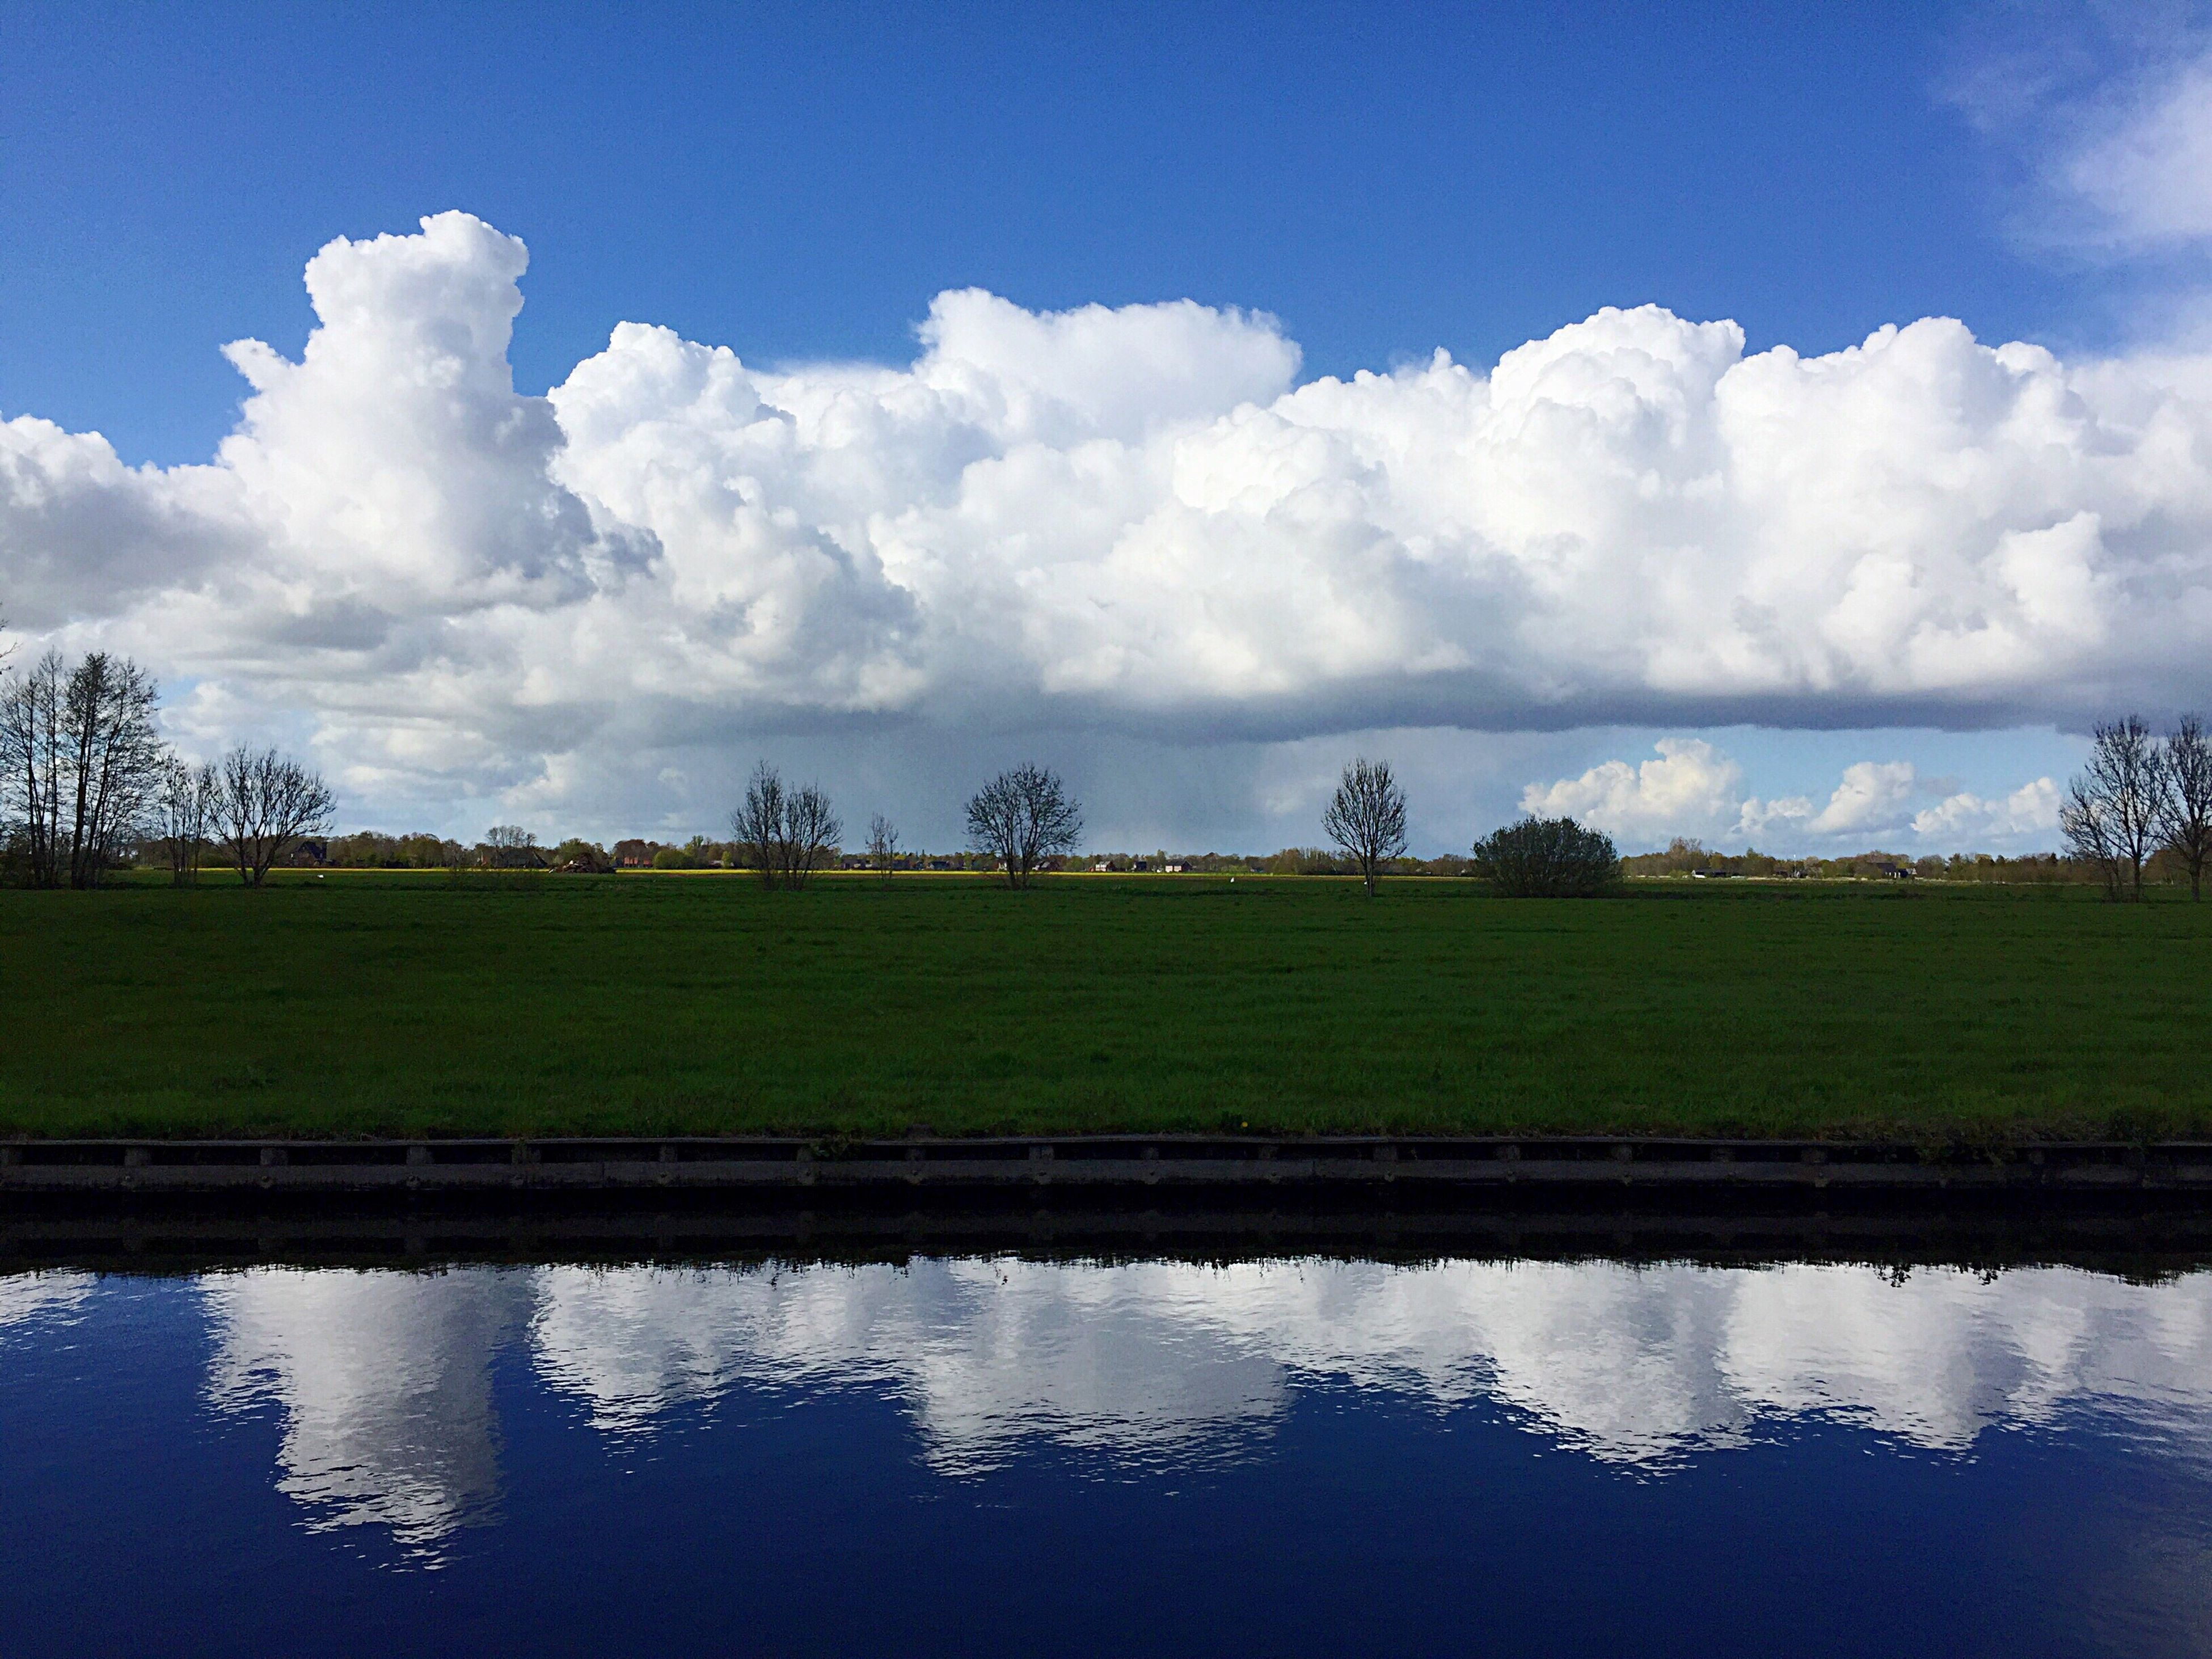 sky, water, tranquil scene, tranquility, field, rural scene, grass, agriculture, landscape, scenics, nature, beauty in nature, green color, reflection, growth, cloud - sky, farm, cloud, lake, waterfront